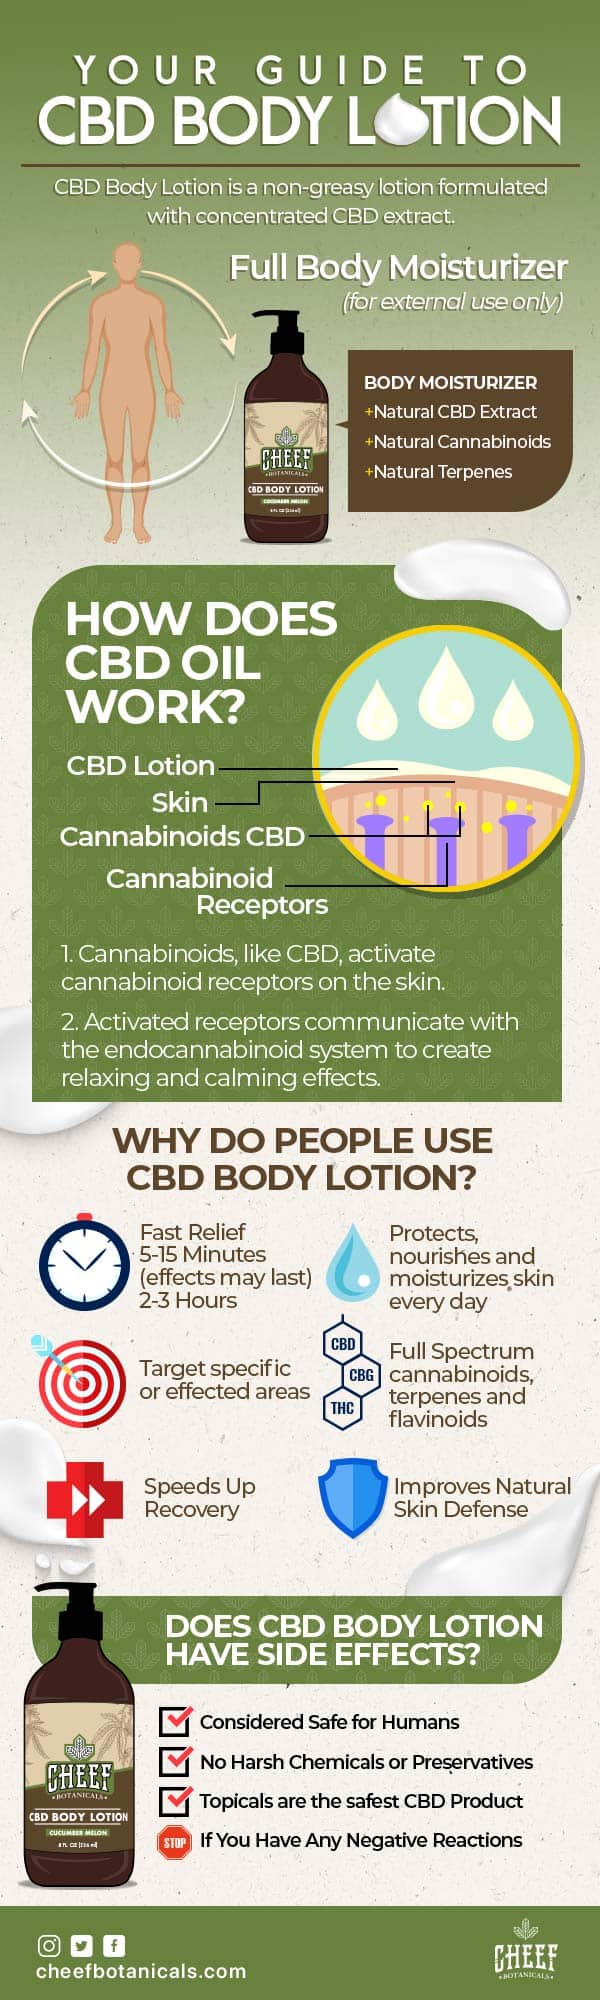 Your guide to CBD body lotion